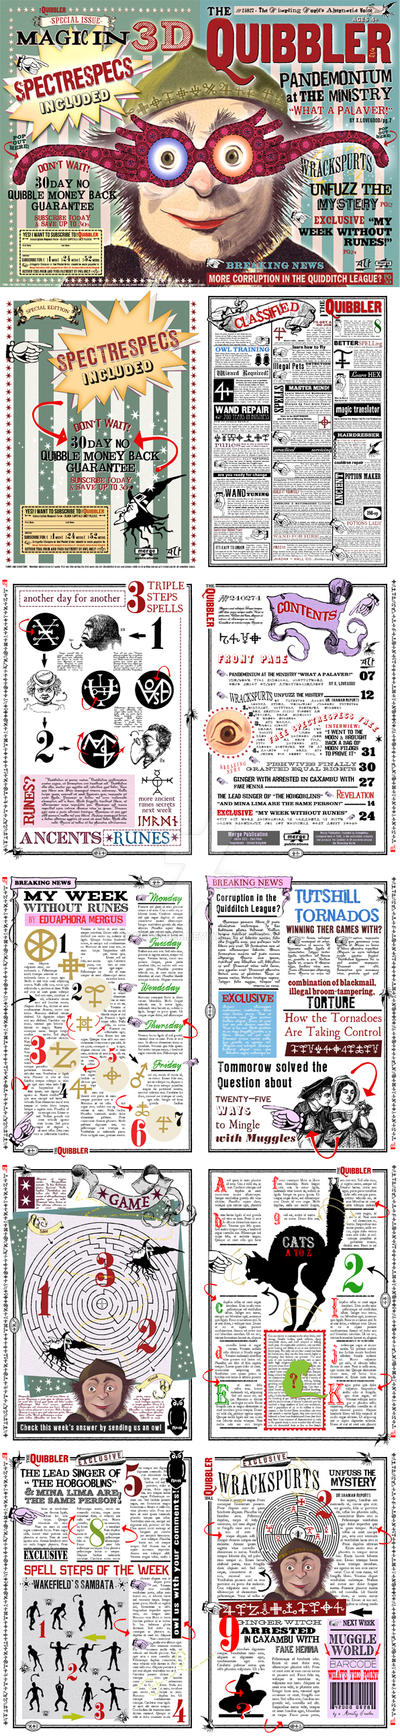 Quibbler Spectrespecs Replica Version with pages. by ...Quibbler Printable Free